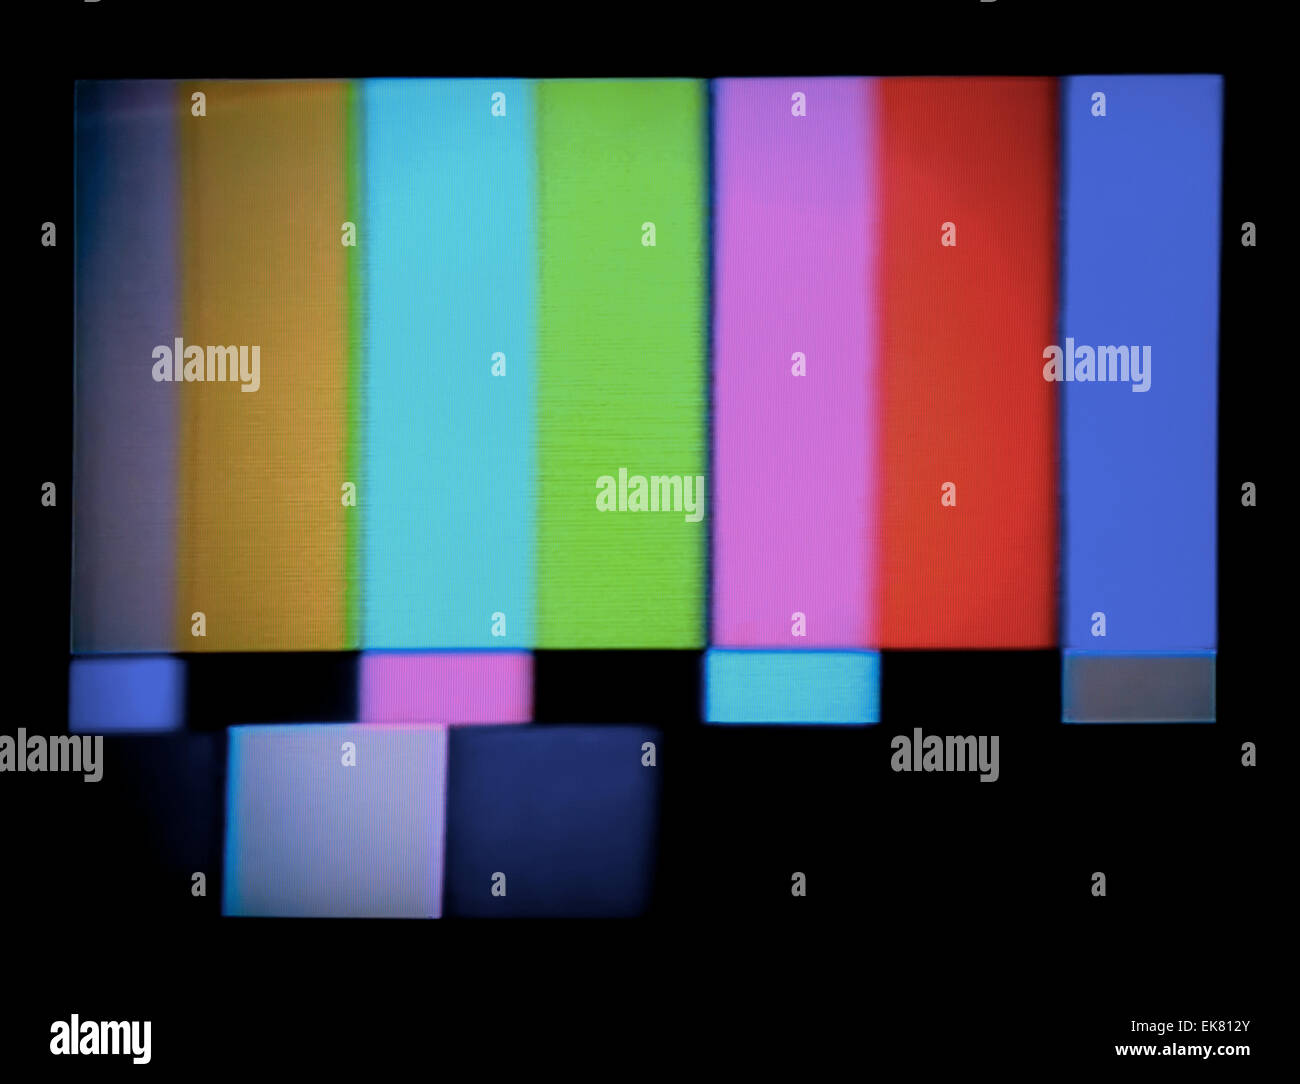 tv test signal - Stock Image